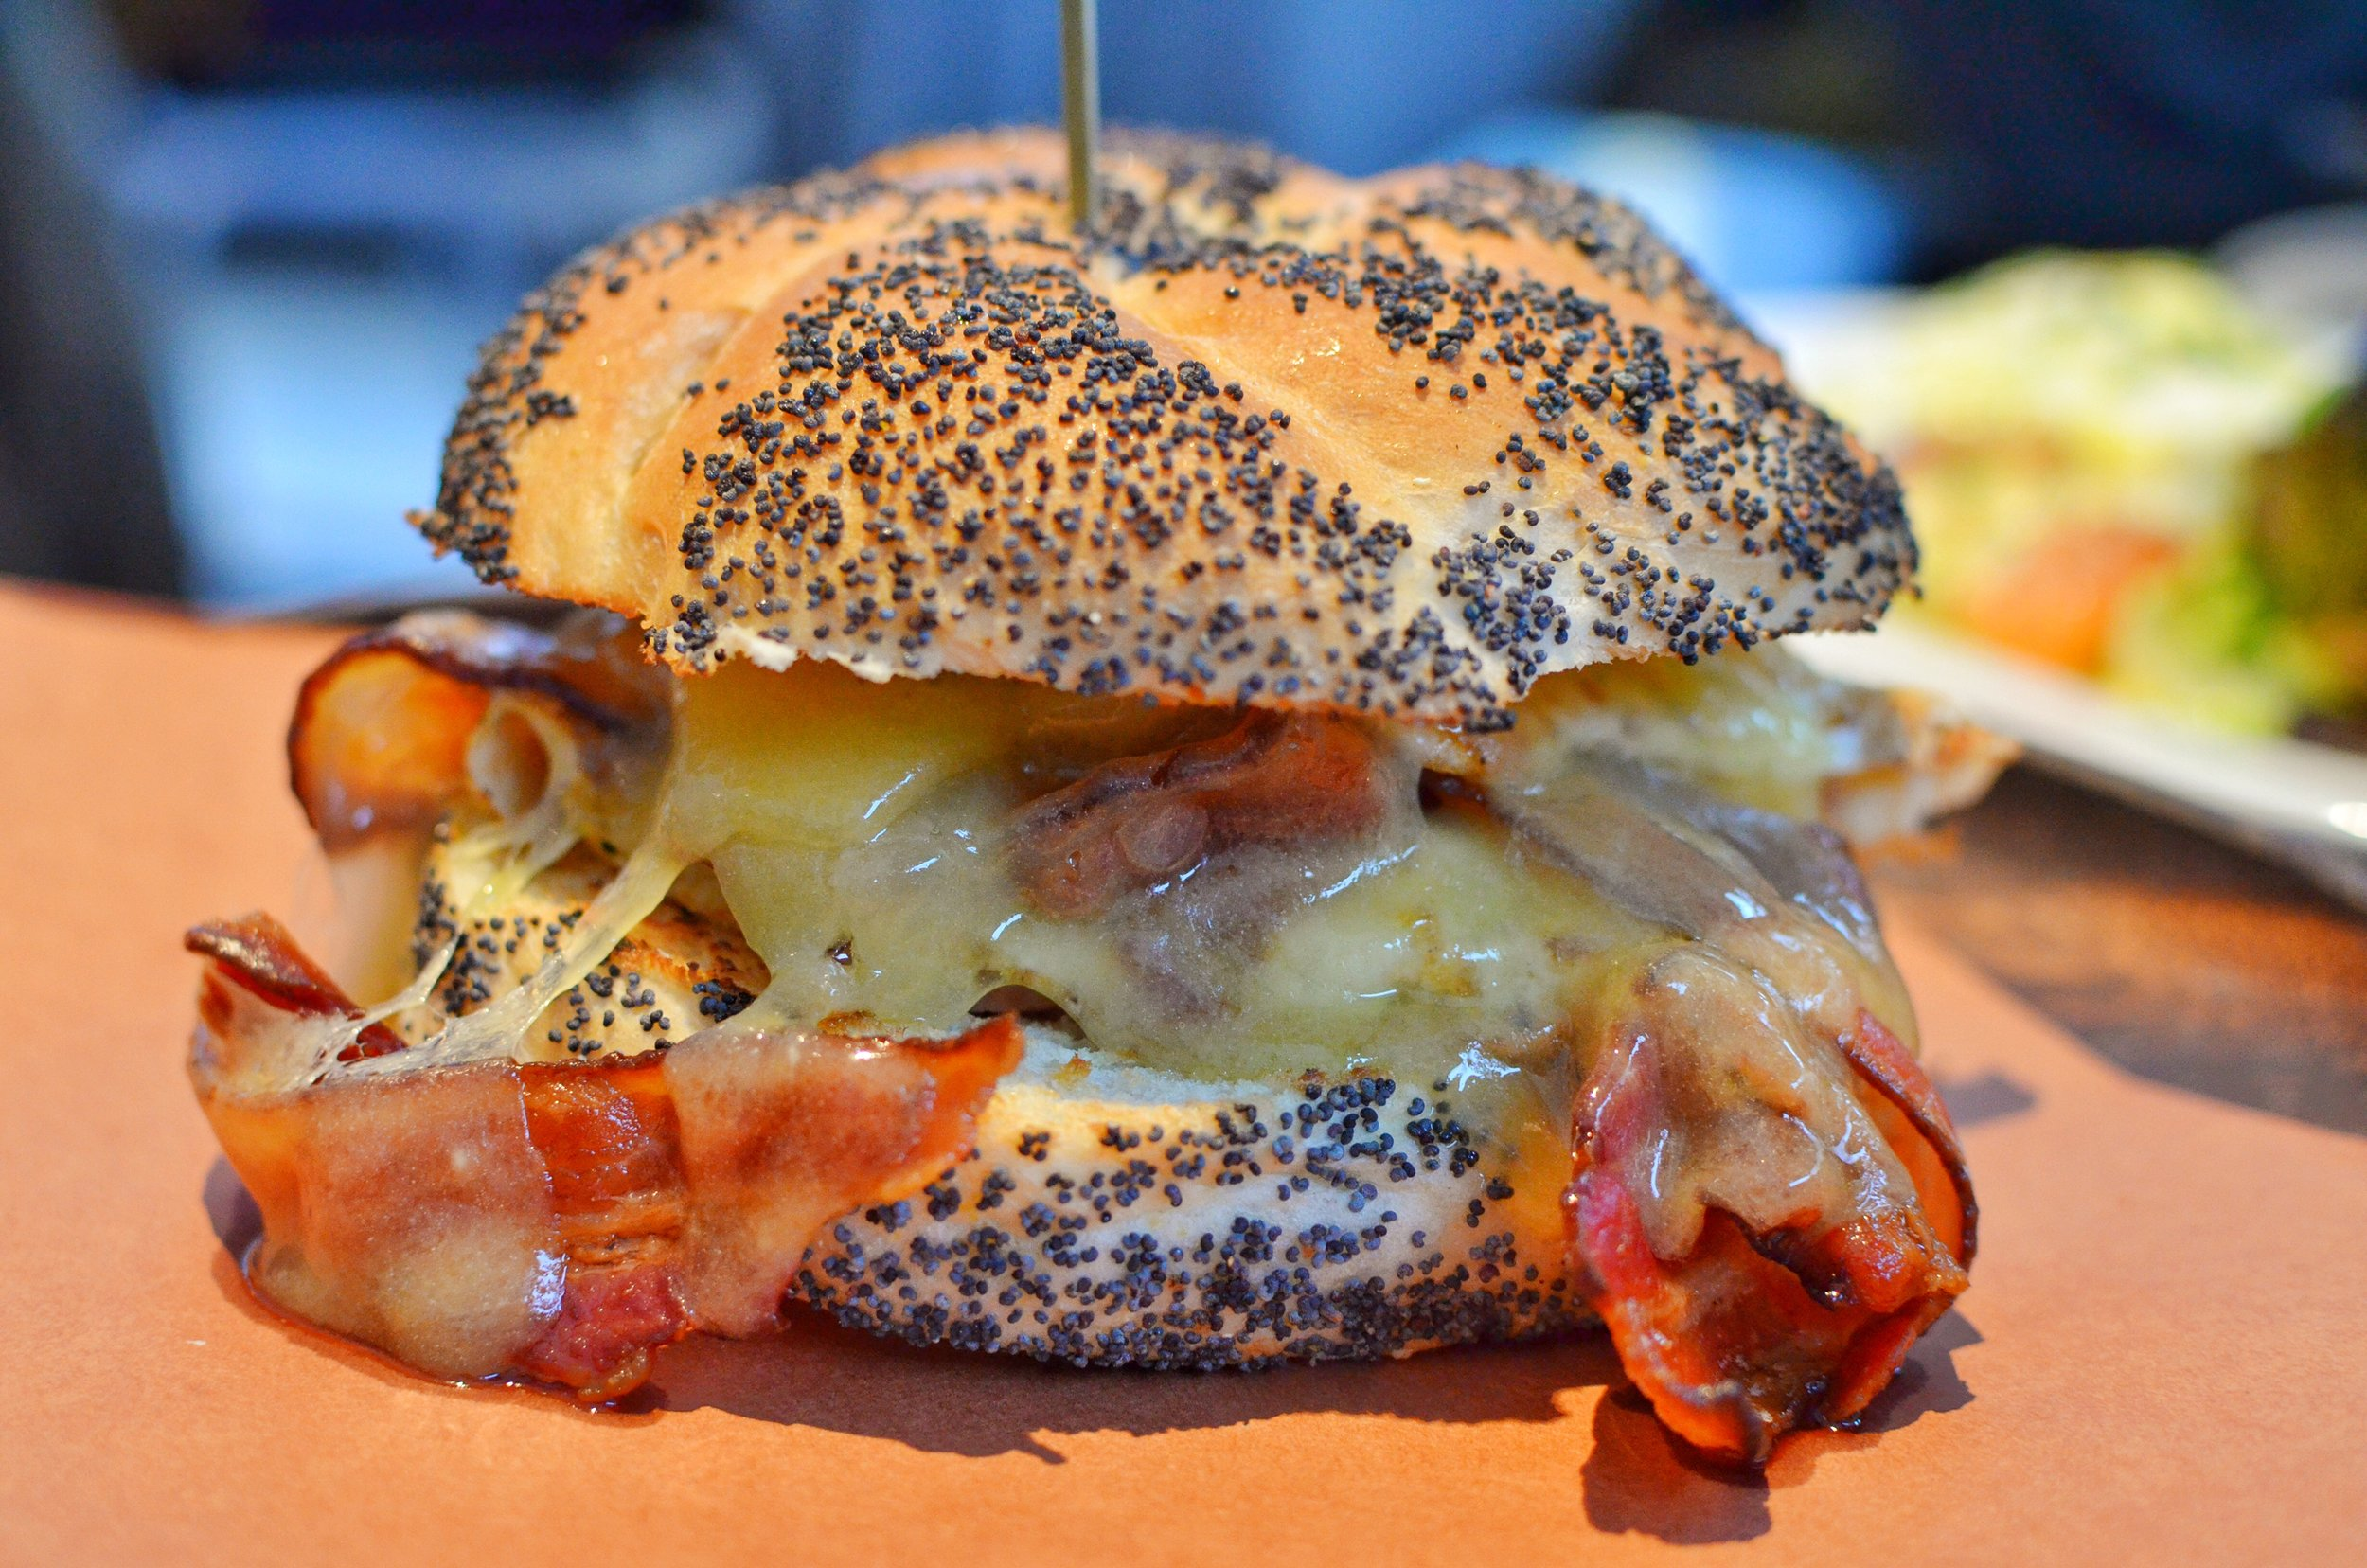 Egg sandwich with bacon, two fried eggs, melted cheddar cheese, pesto on a poppy seed Kaiser roll